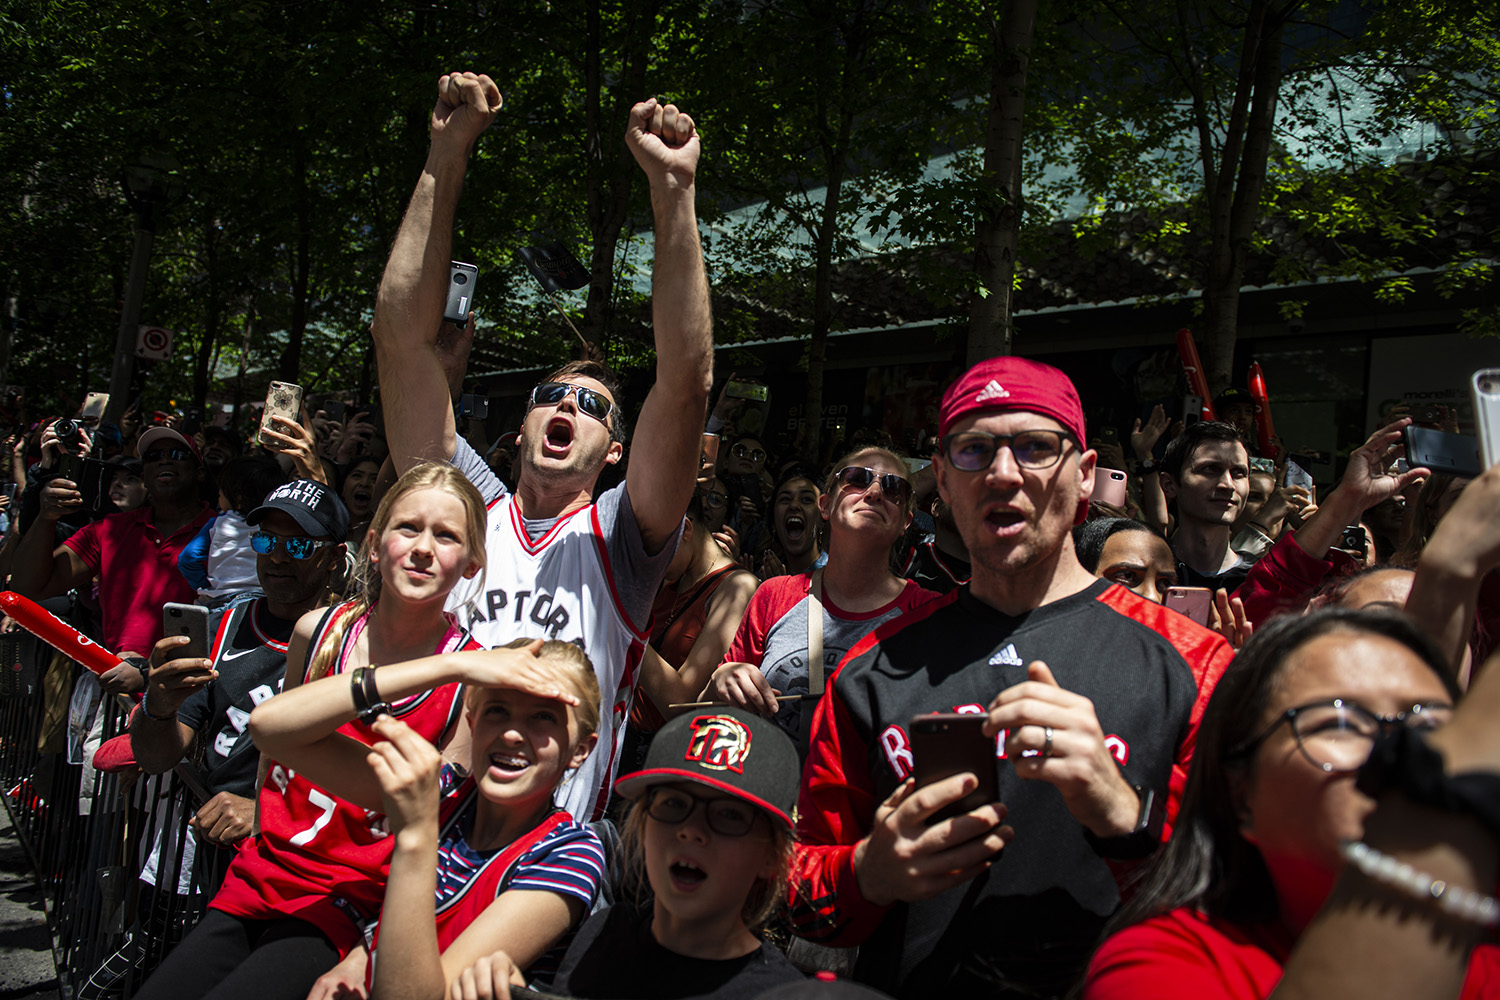 Toronto Raptors' fans watch and cheer as their team parade through downtown Toronto celebrating their first NBA Championship title on, Monday, June 17, 2019.